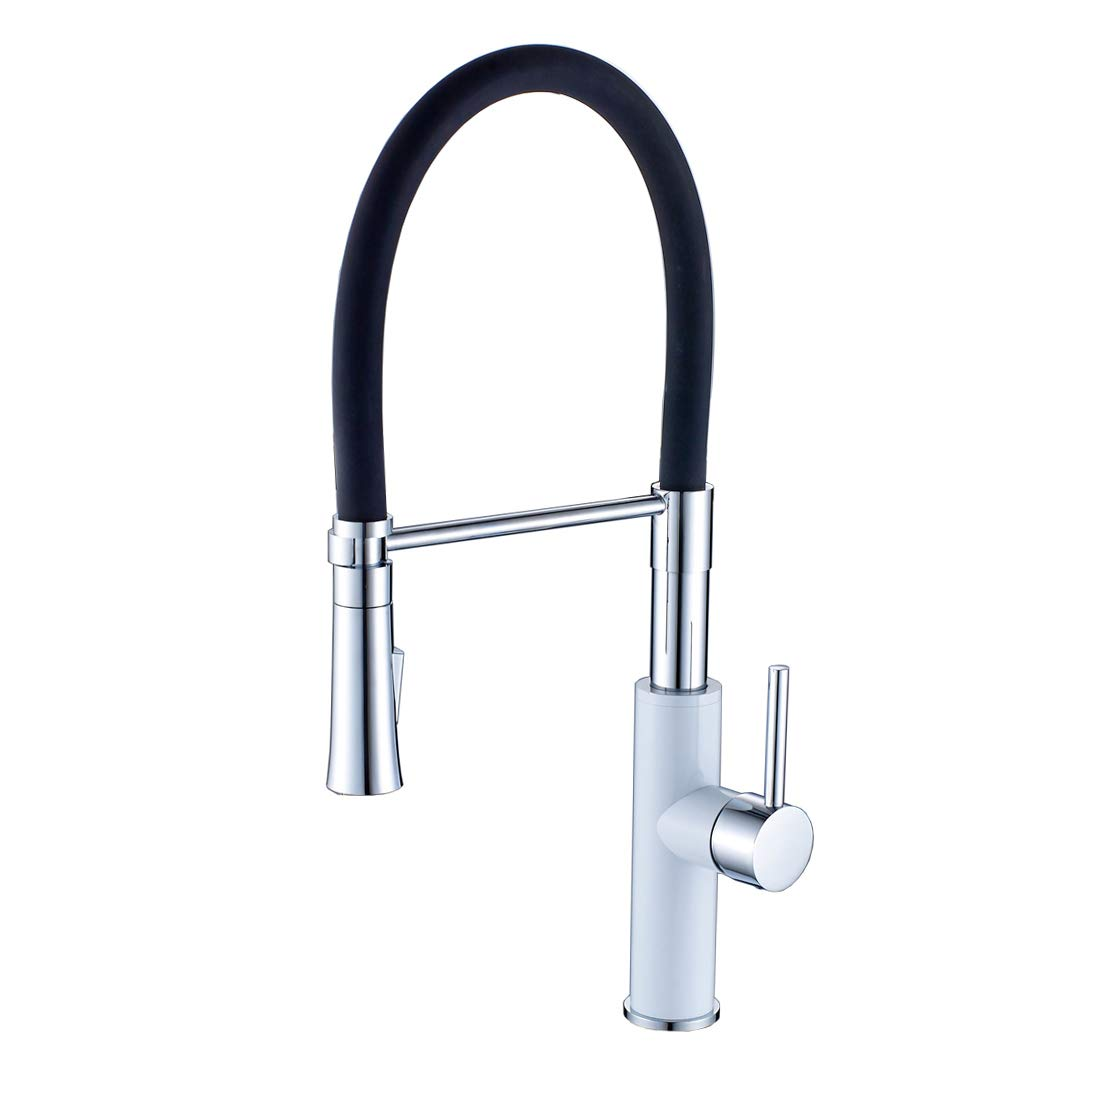 Fapully Contemporary Single Handle Pull-Down Kitchen Sink Faucet with Sprayer Swivel Spout White Painting and Chrome Mixer Taps